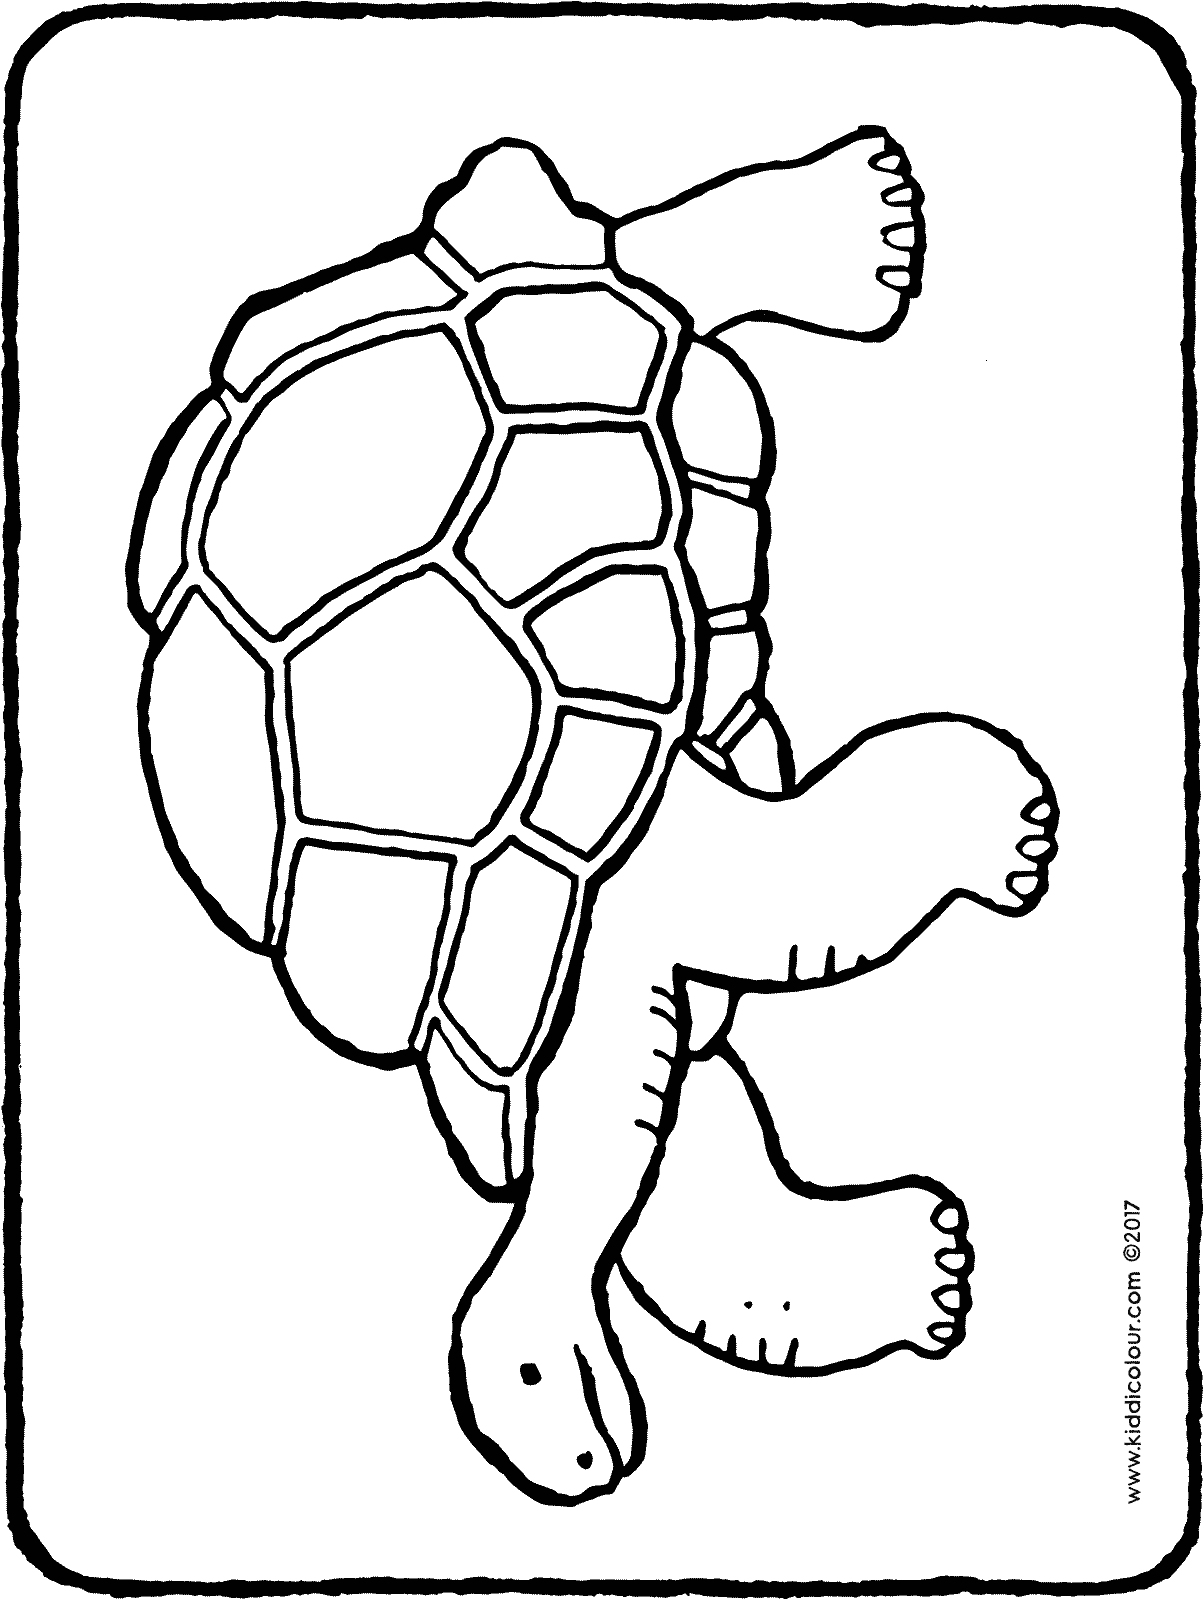 tortoise coloring page smiling tortoise coloring pages download free smiling page tortoise coloring